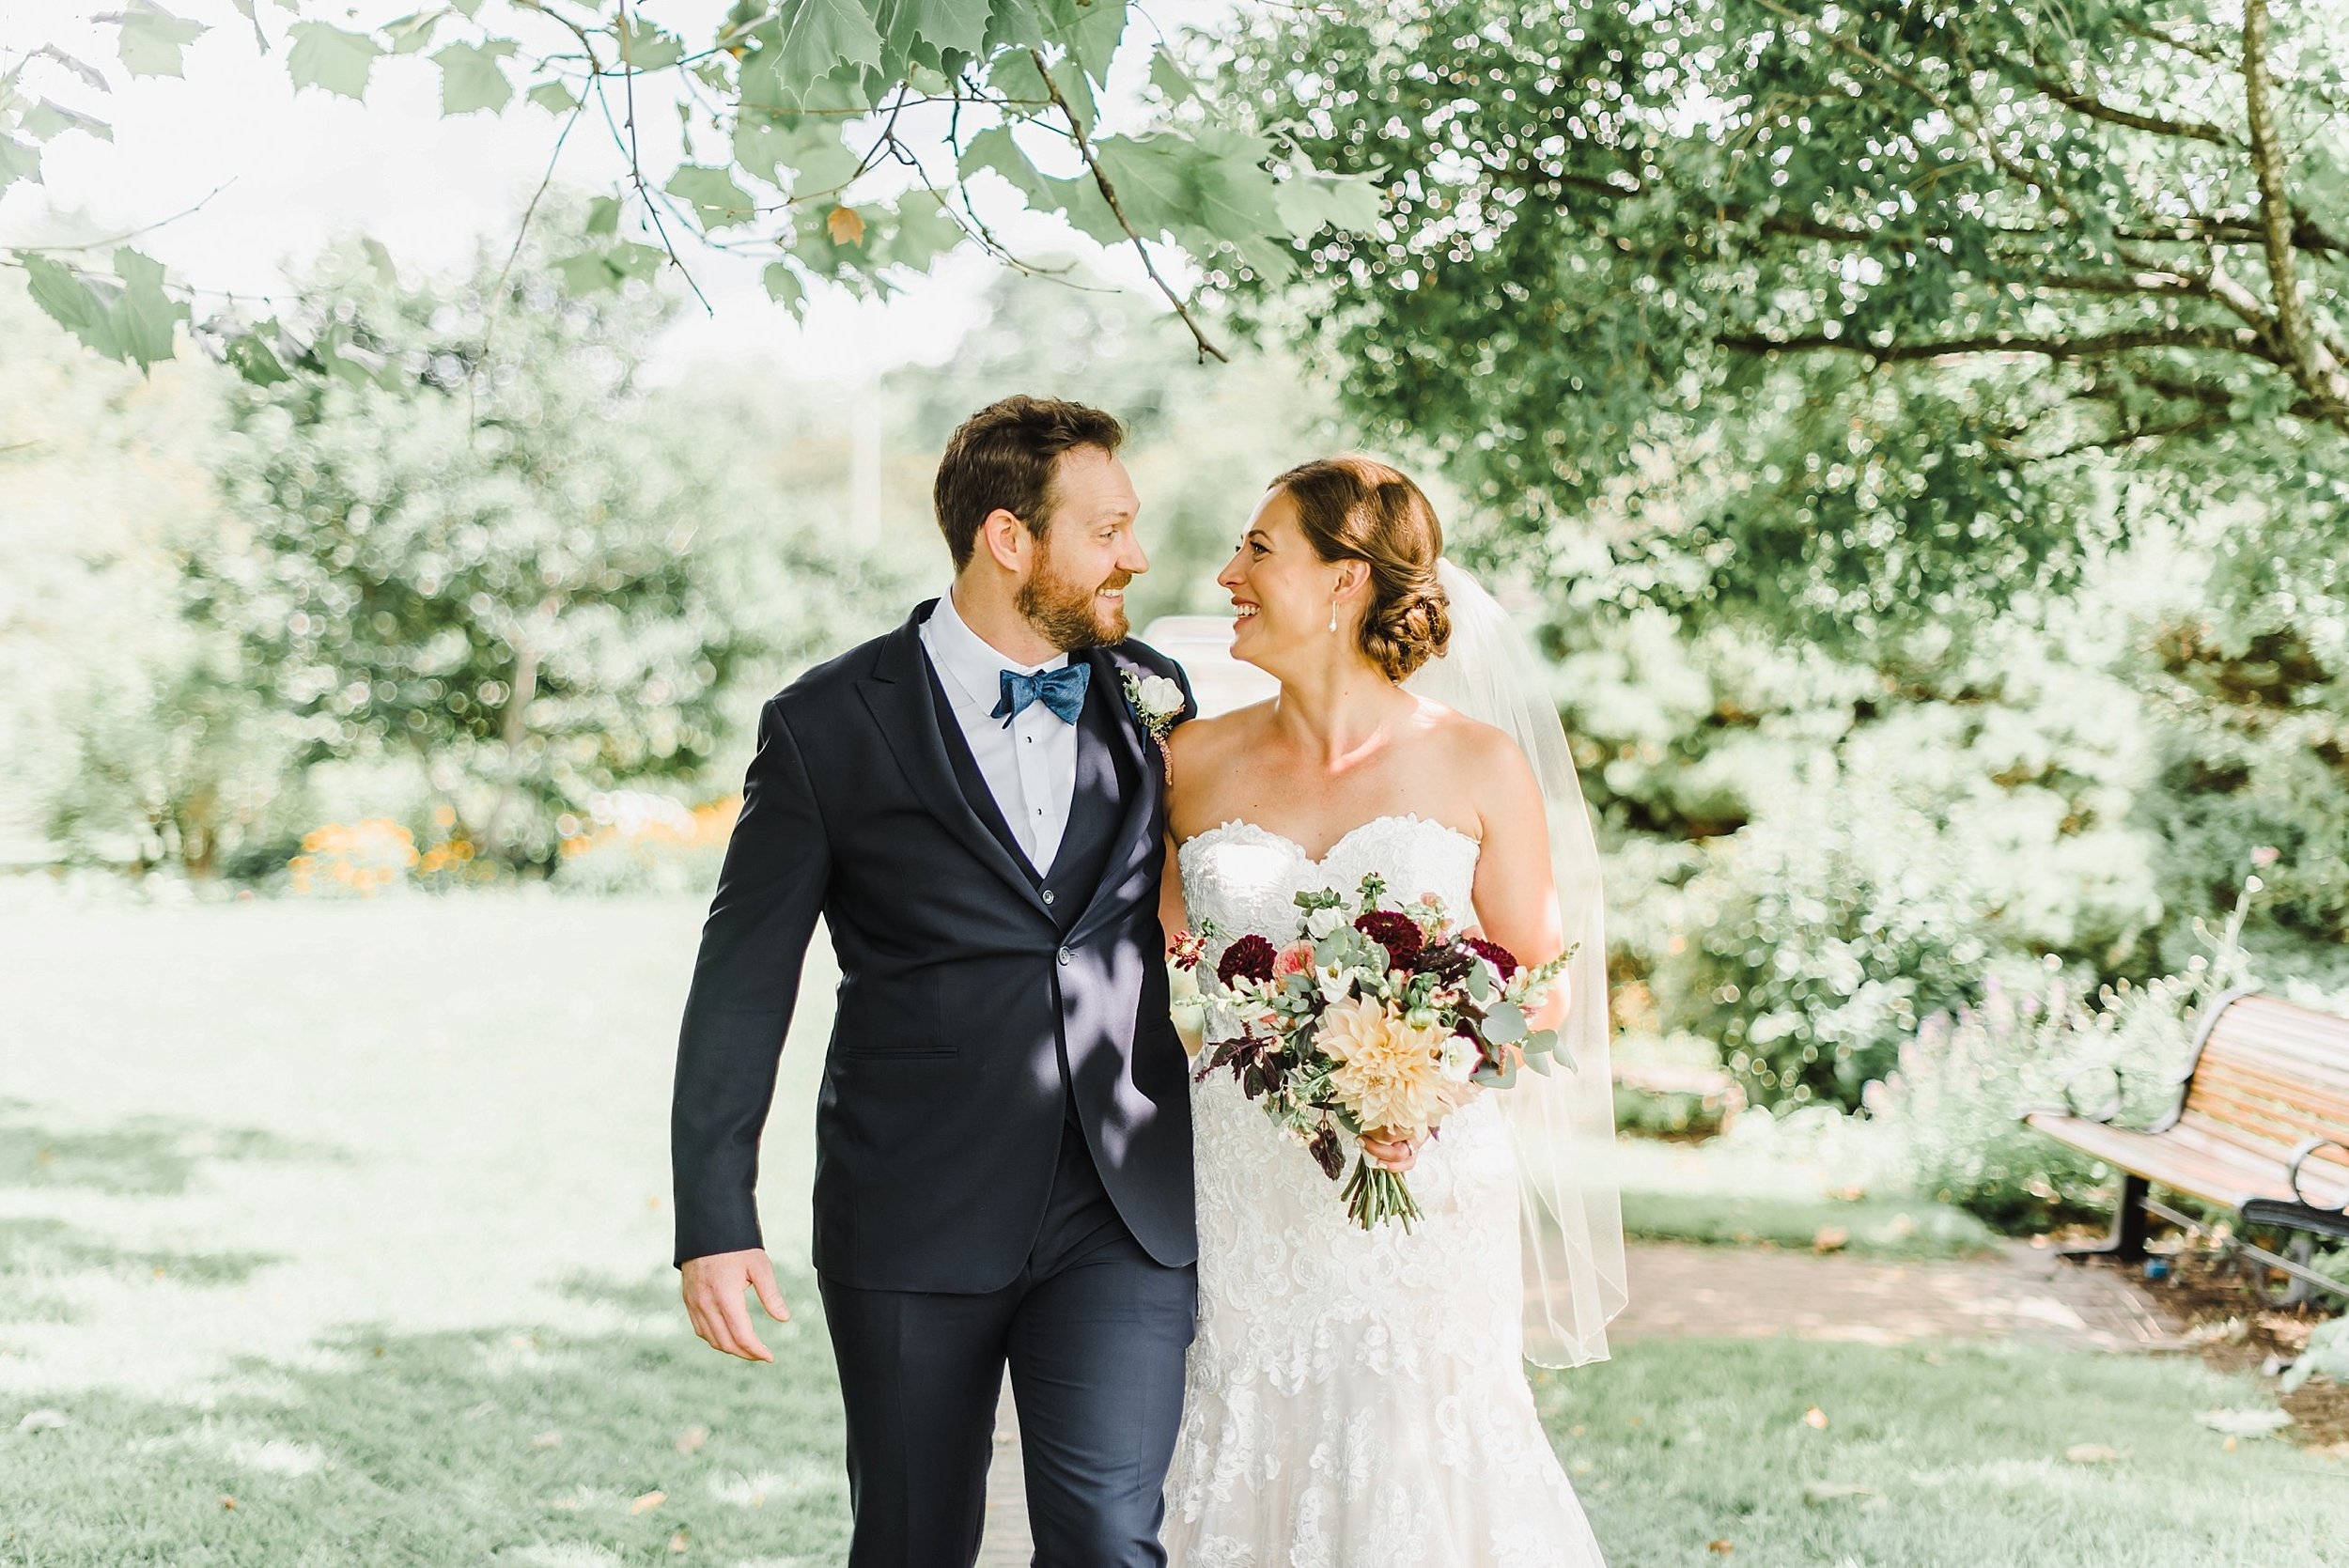 We took advantage of the empty grounds to walk through the gardens and capture some of their bride and groom photos throughout before the ceremony.